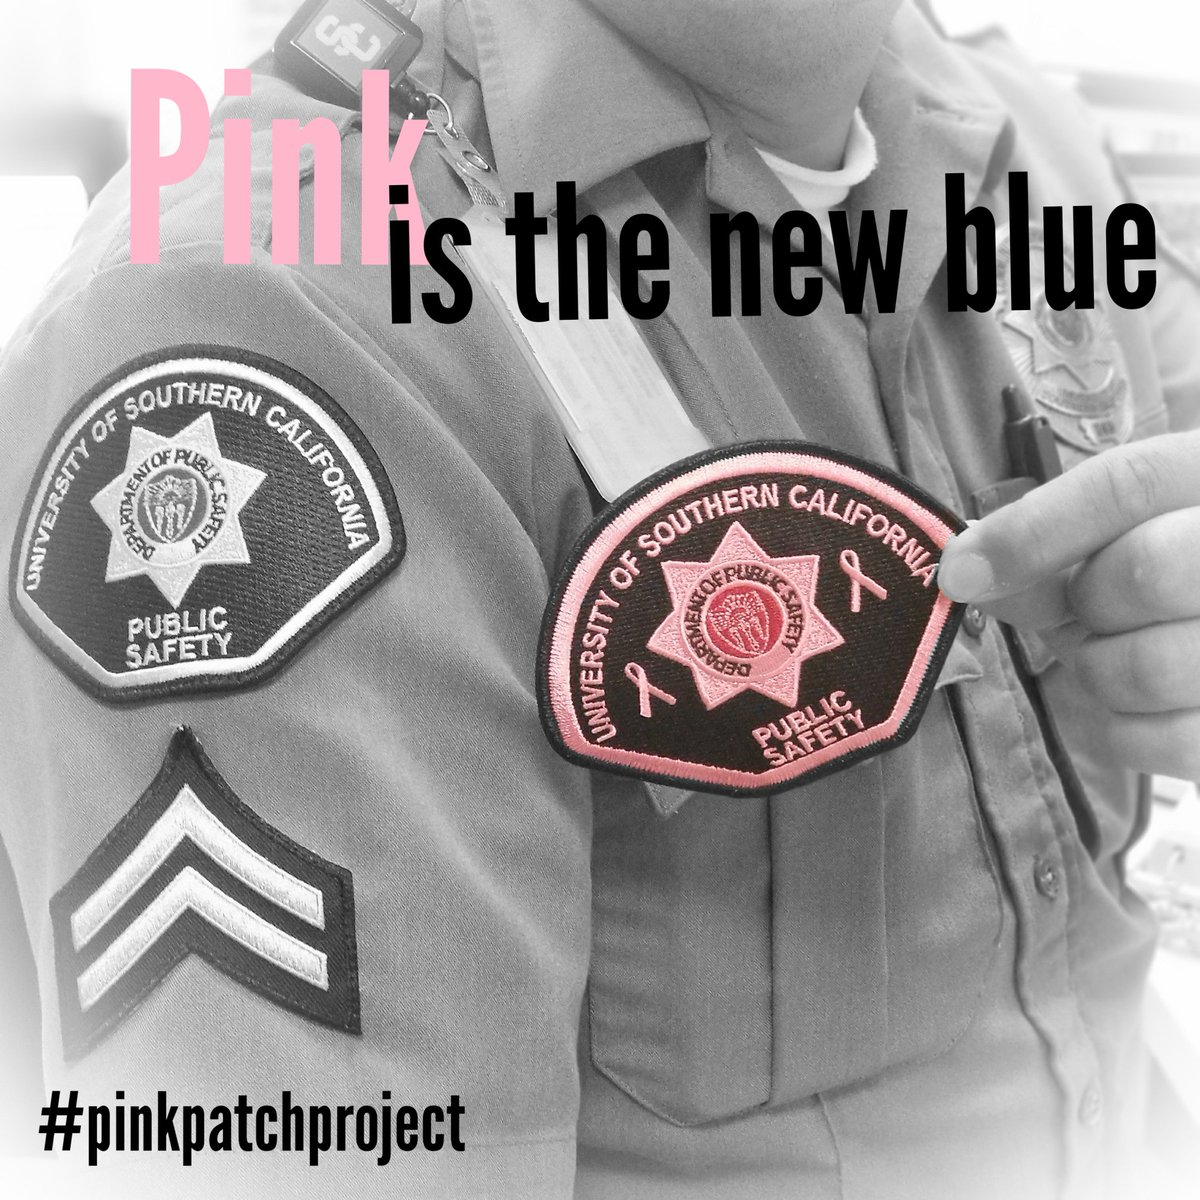 Pink Patch Project on Twitter: